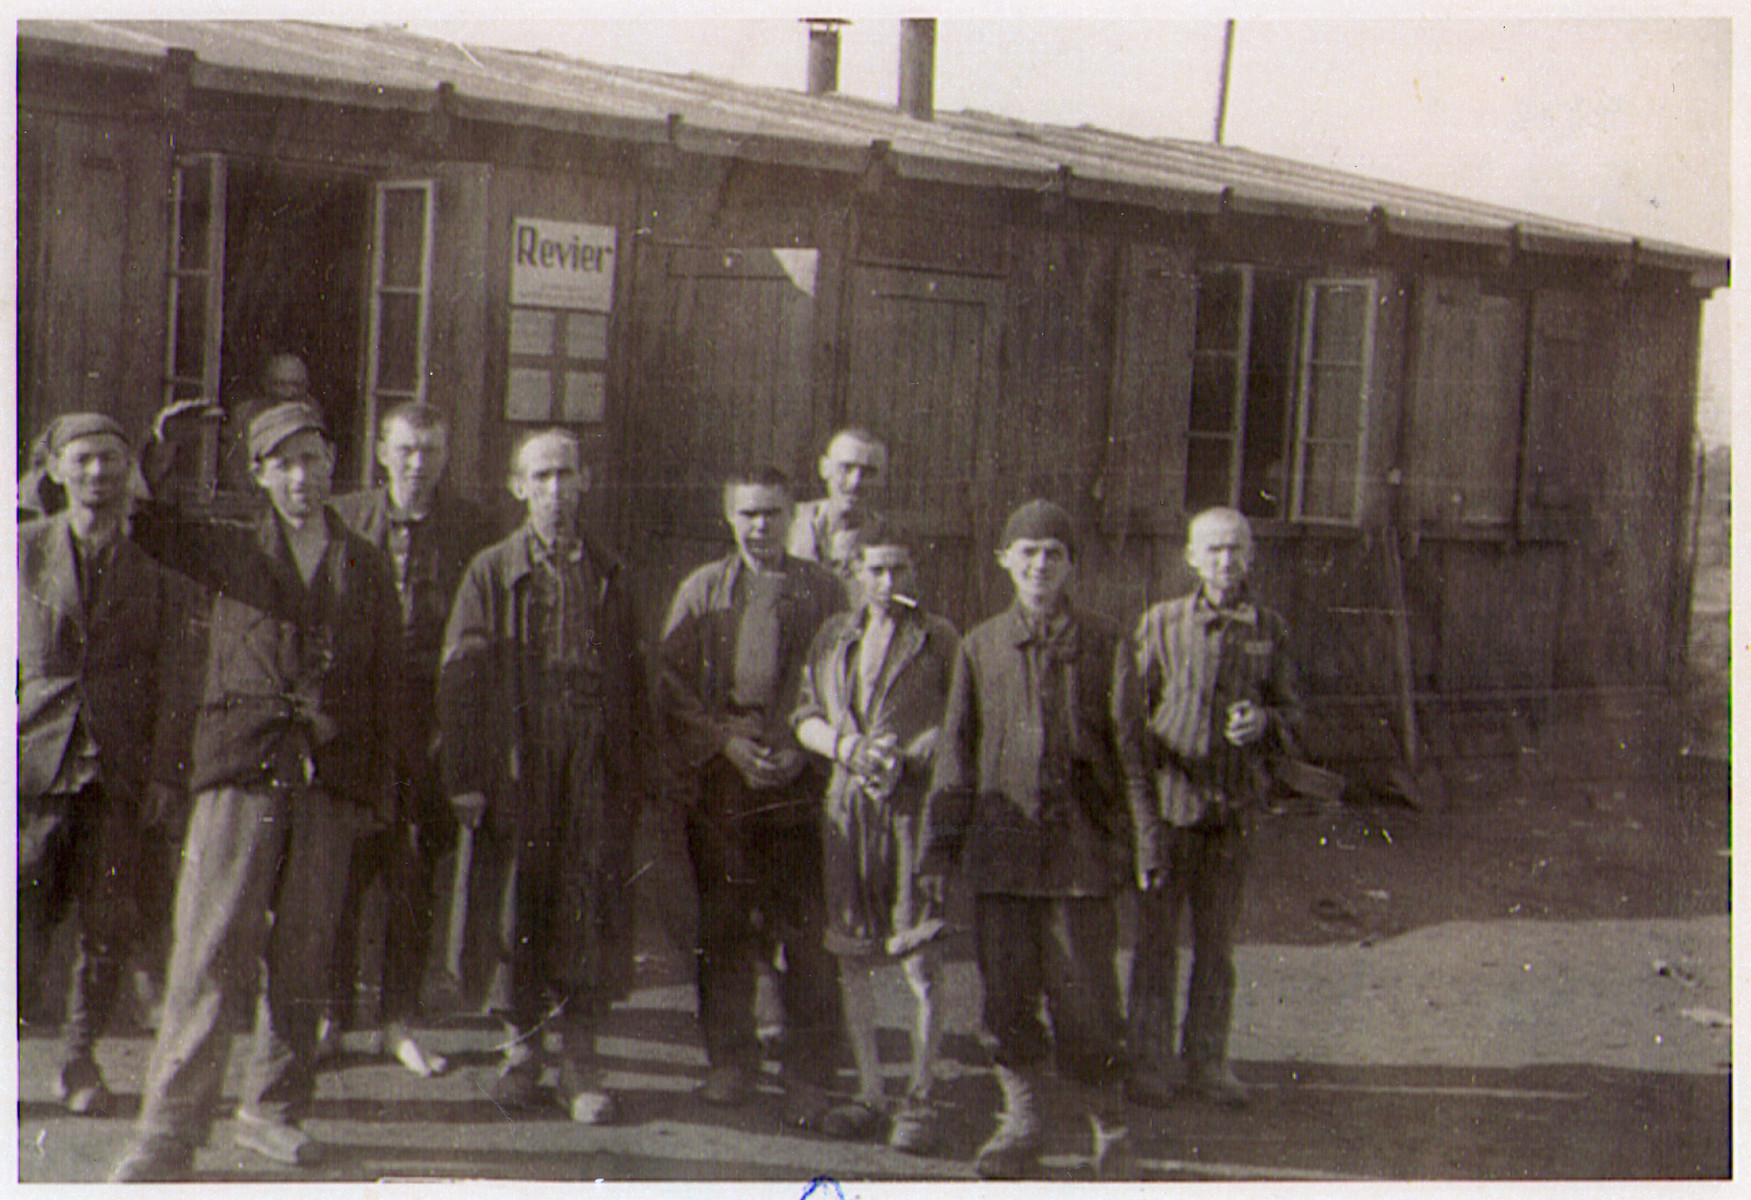 A group of survivors of the Hanover-Ahlem concentration camp gather outside of the infirmary.